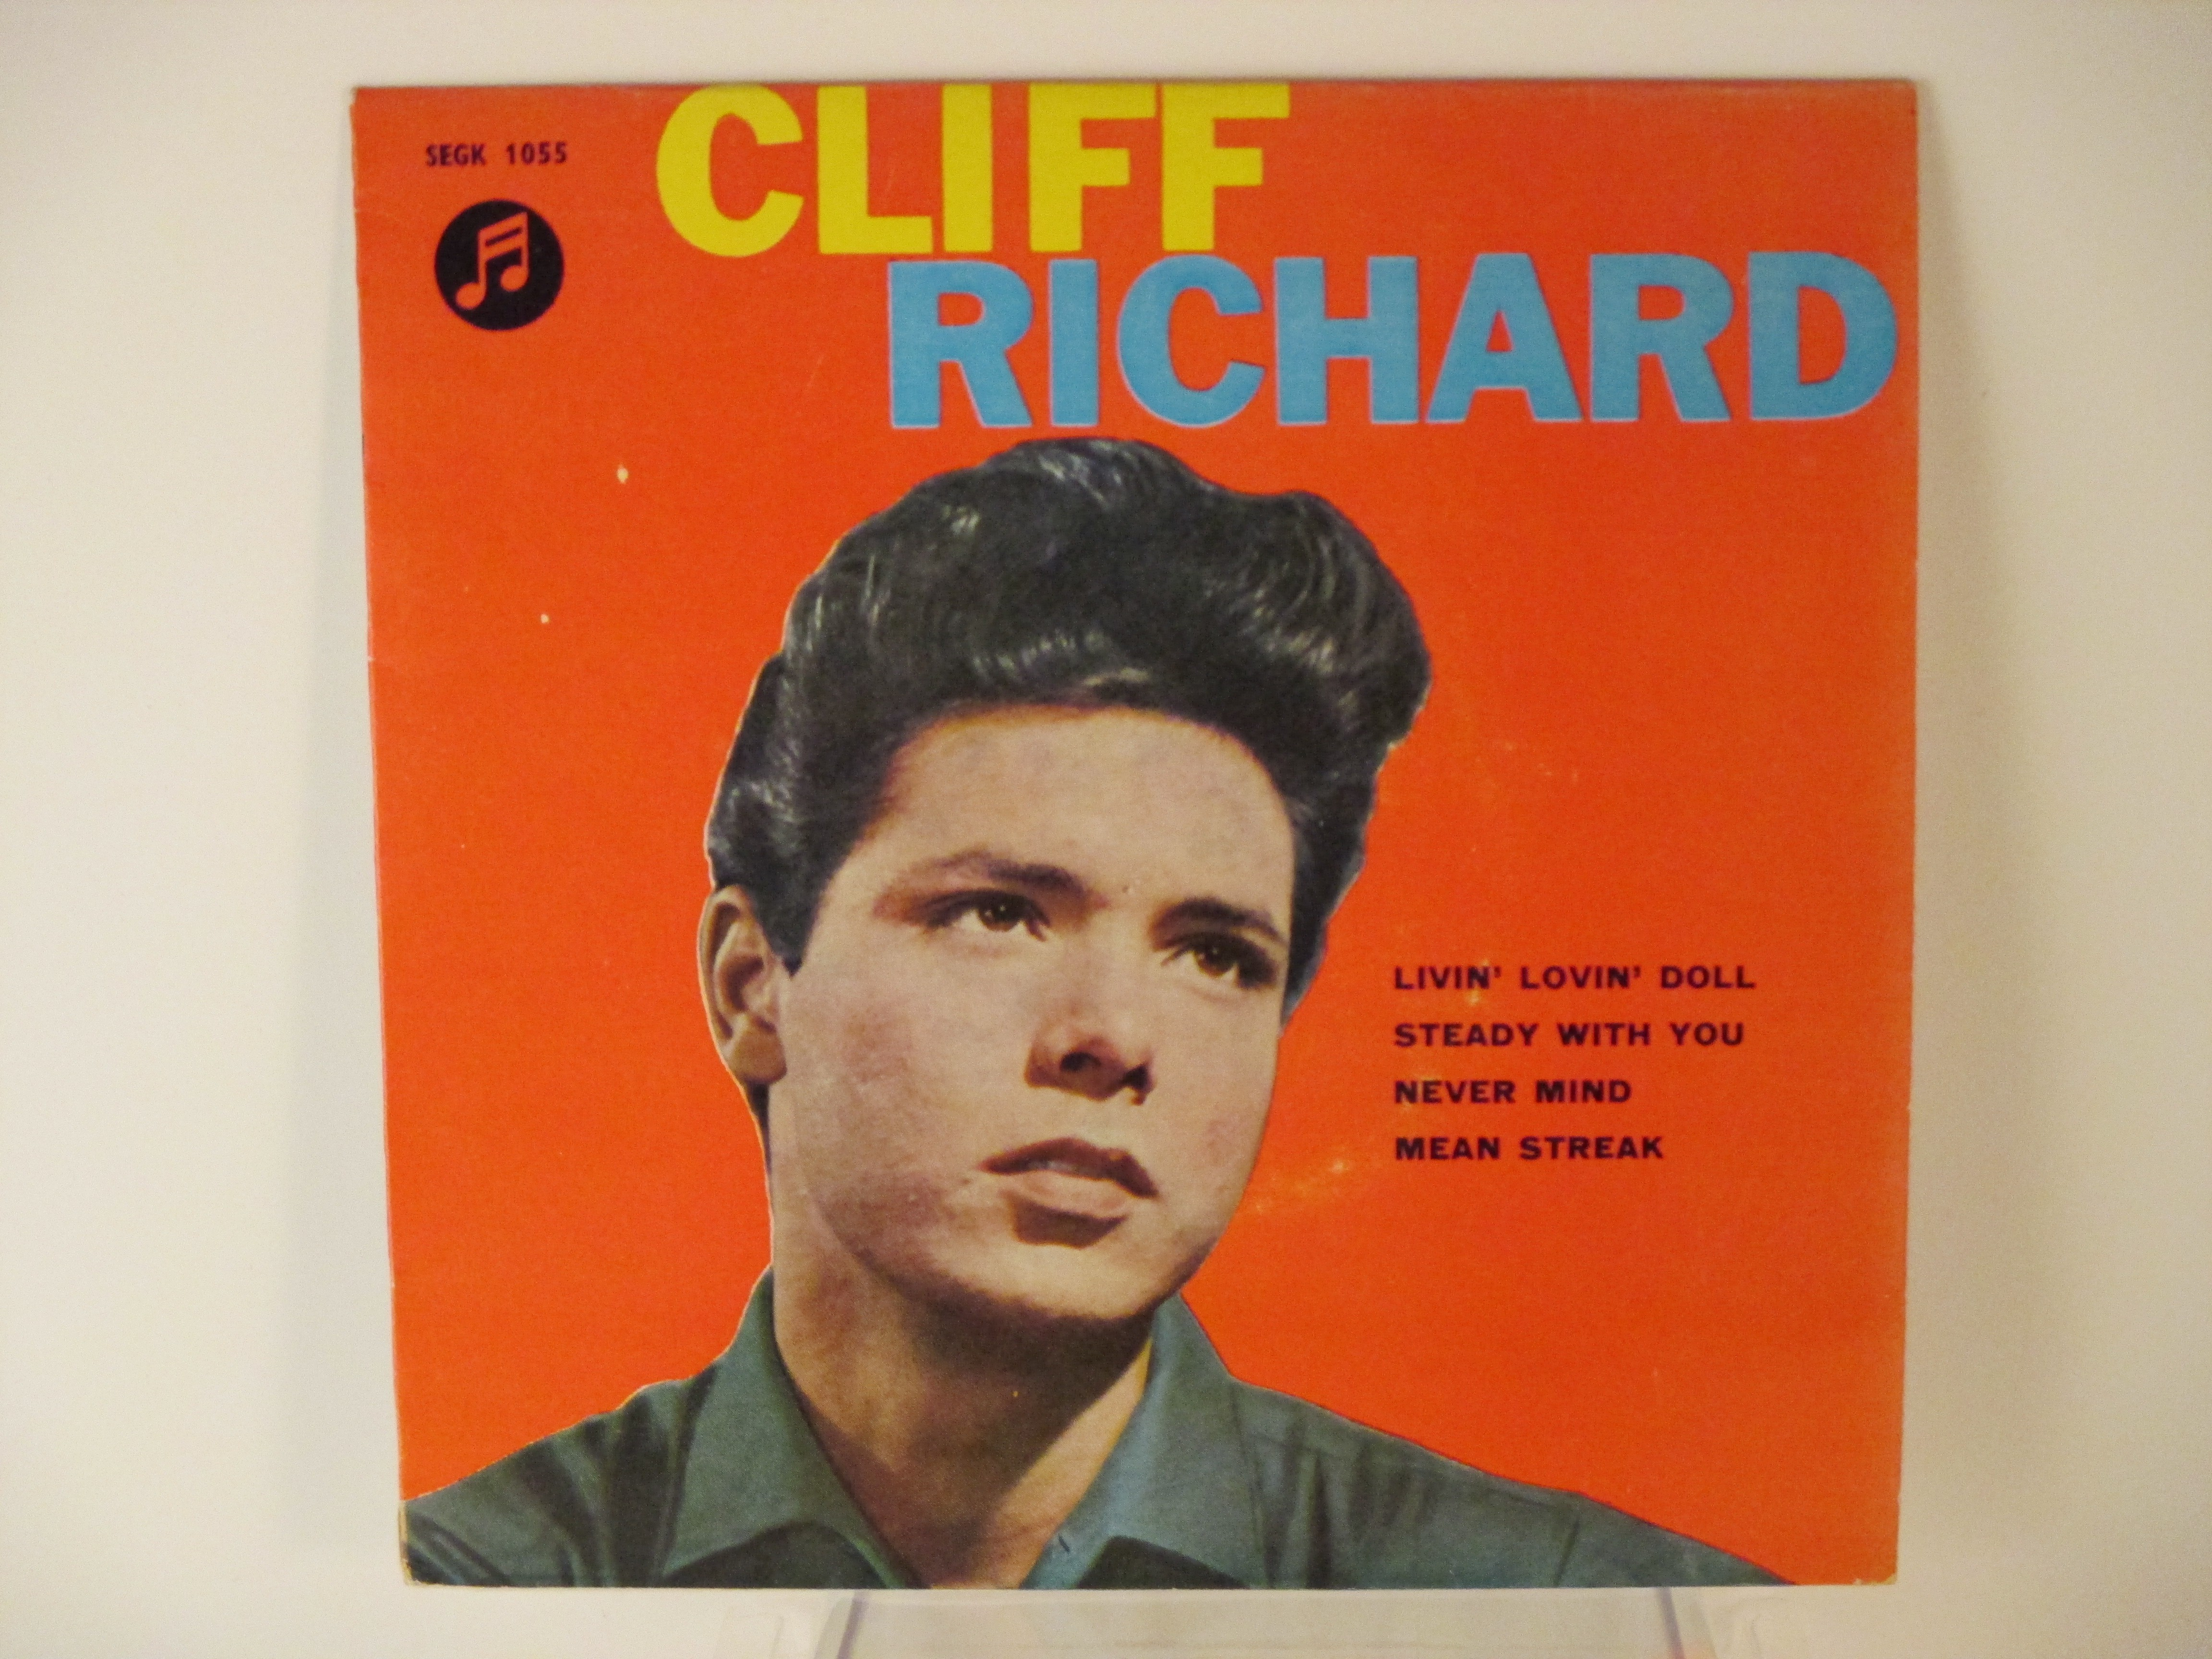 CLIFF RICHARD : (EP) Livin' lovin' doll / Steady with you / Never mind / Mean streak